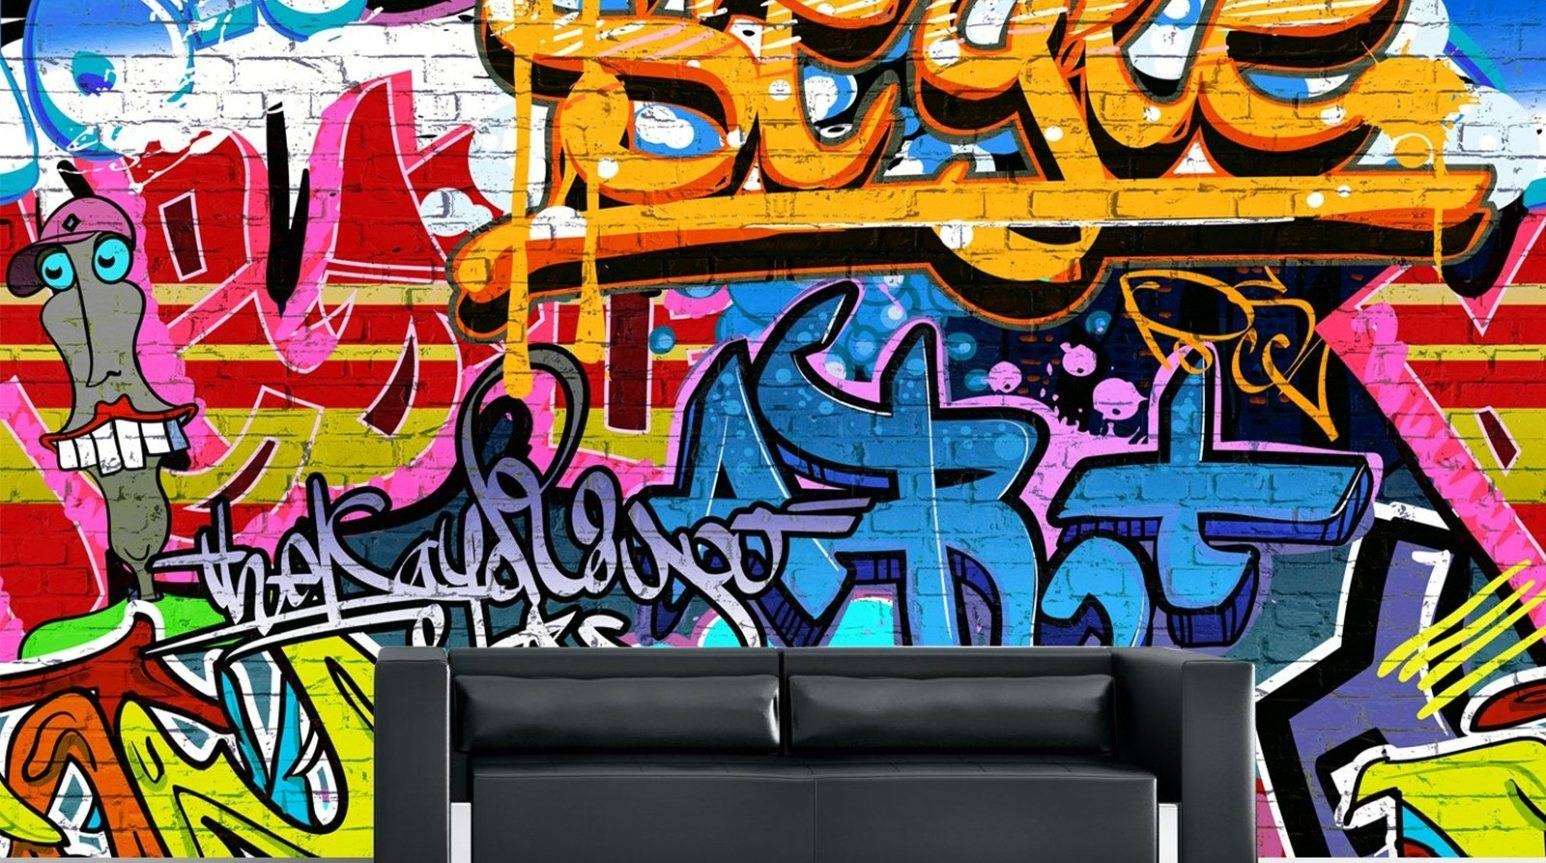 Mural : 15Houstonwallsyougottasee Amazing Graffiti Wall Mural Throughout 2018 Personalized Graffiti Wall Art (View 10 of 30)